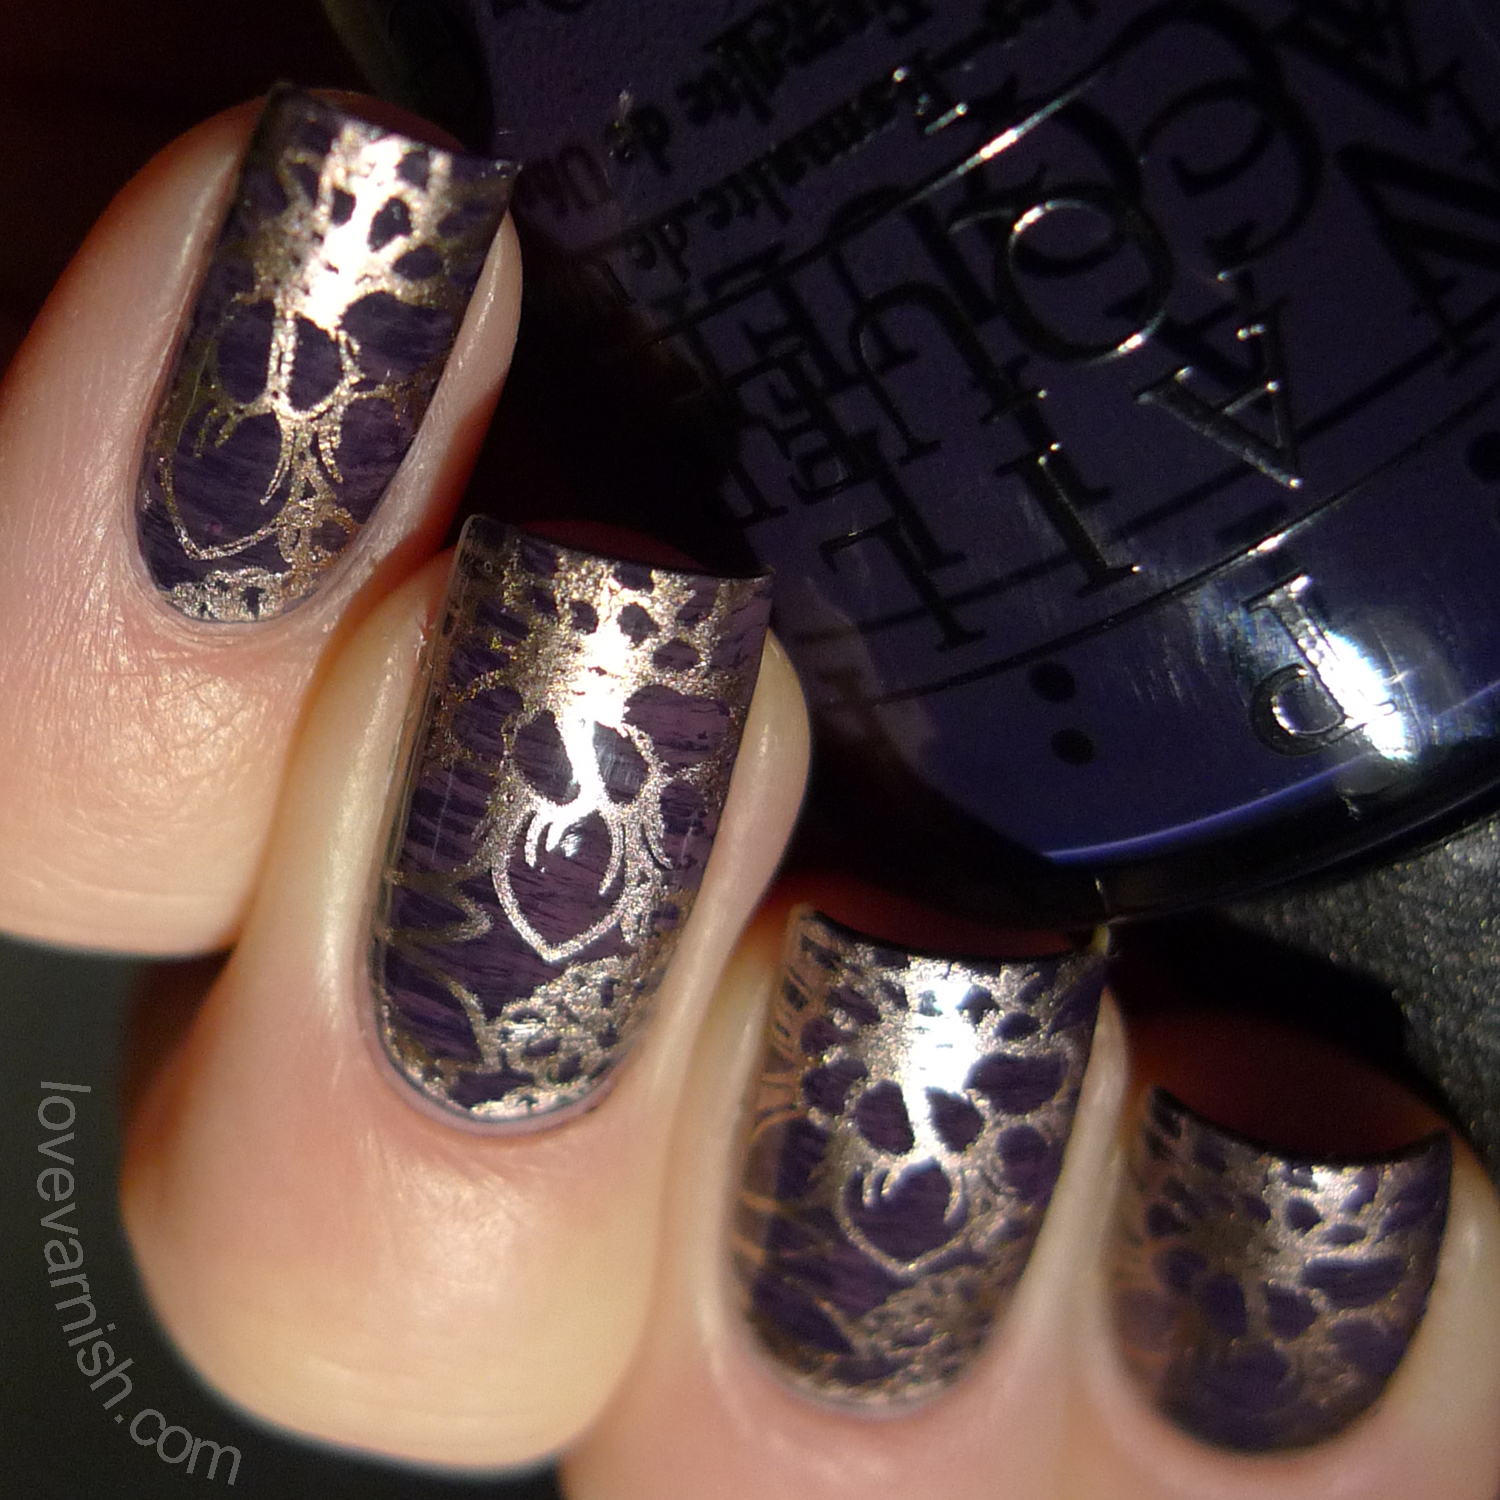 Whisked away nailart using OPI Miss Universe shades